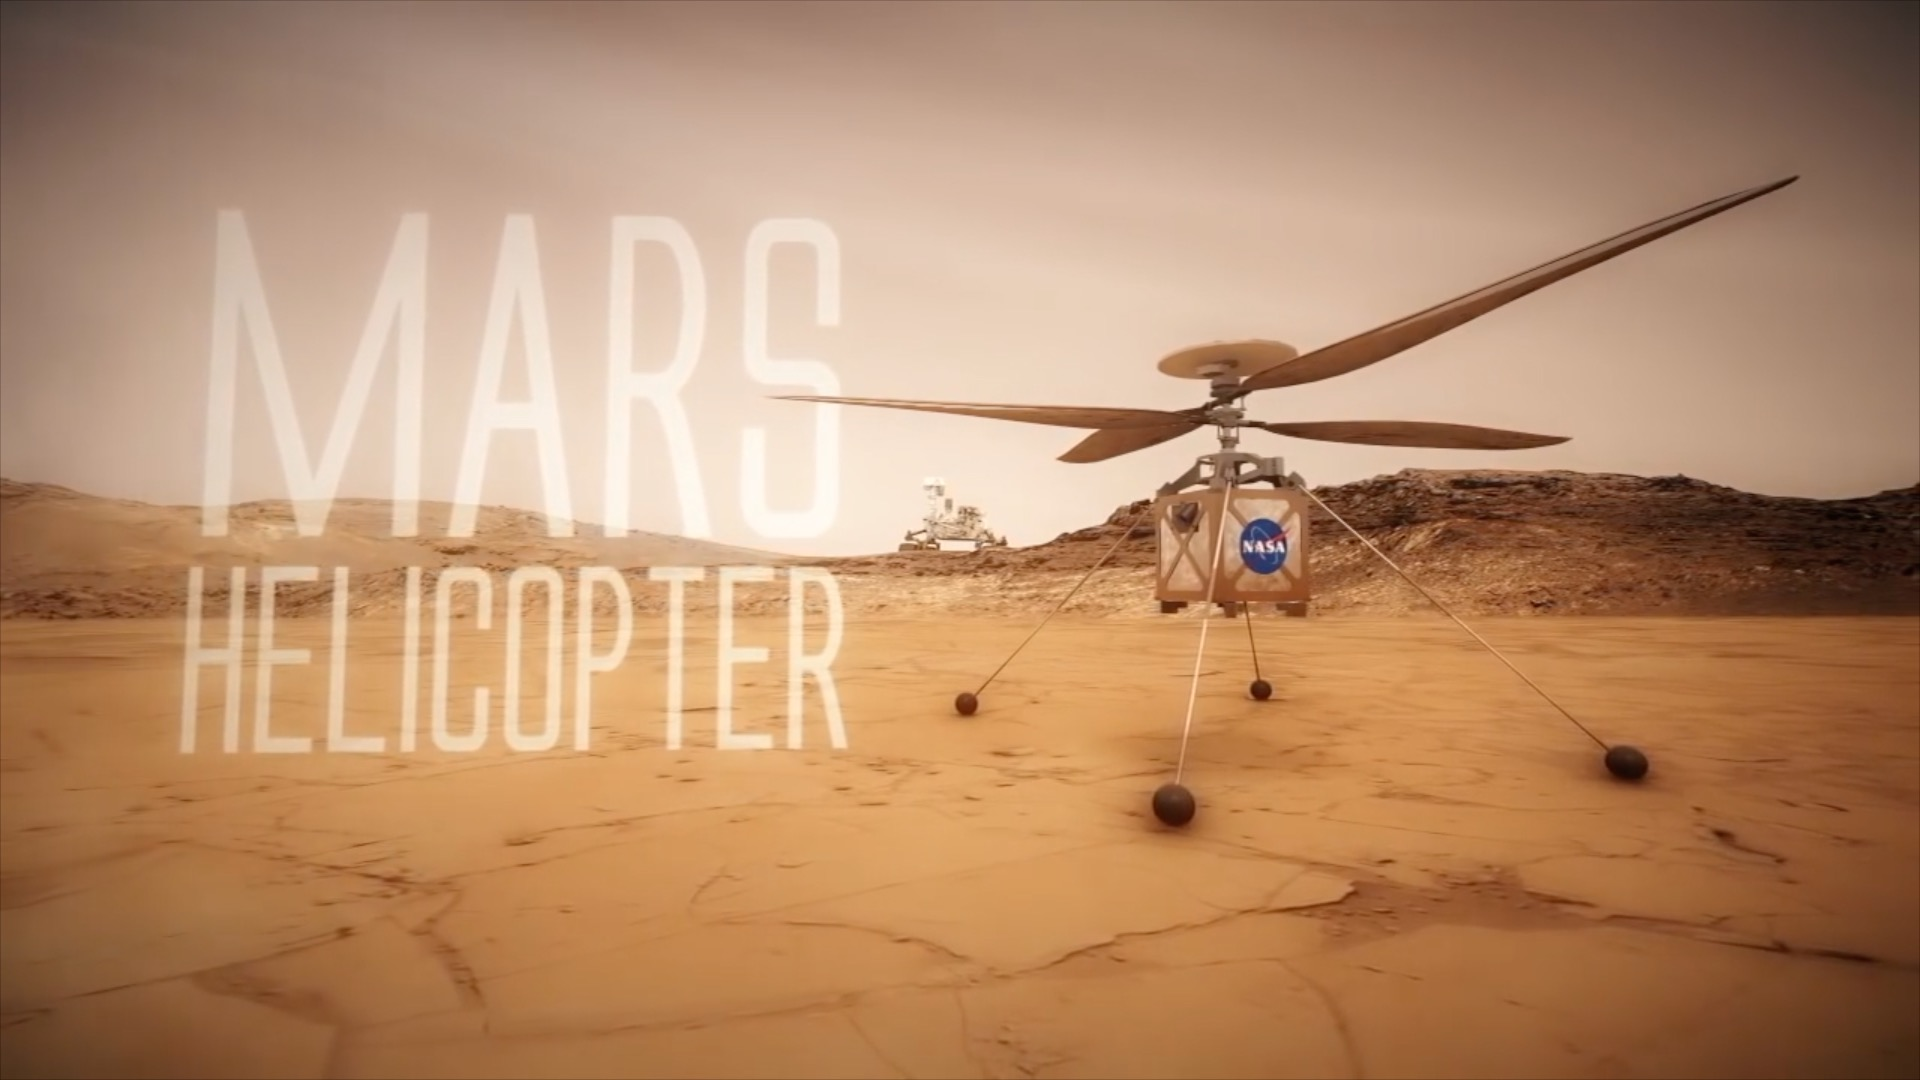 Airbus Mars rover will send samples back to Earth